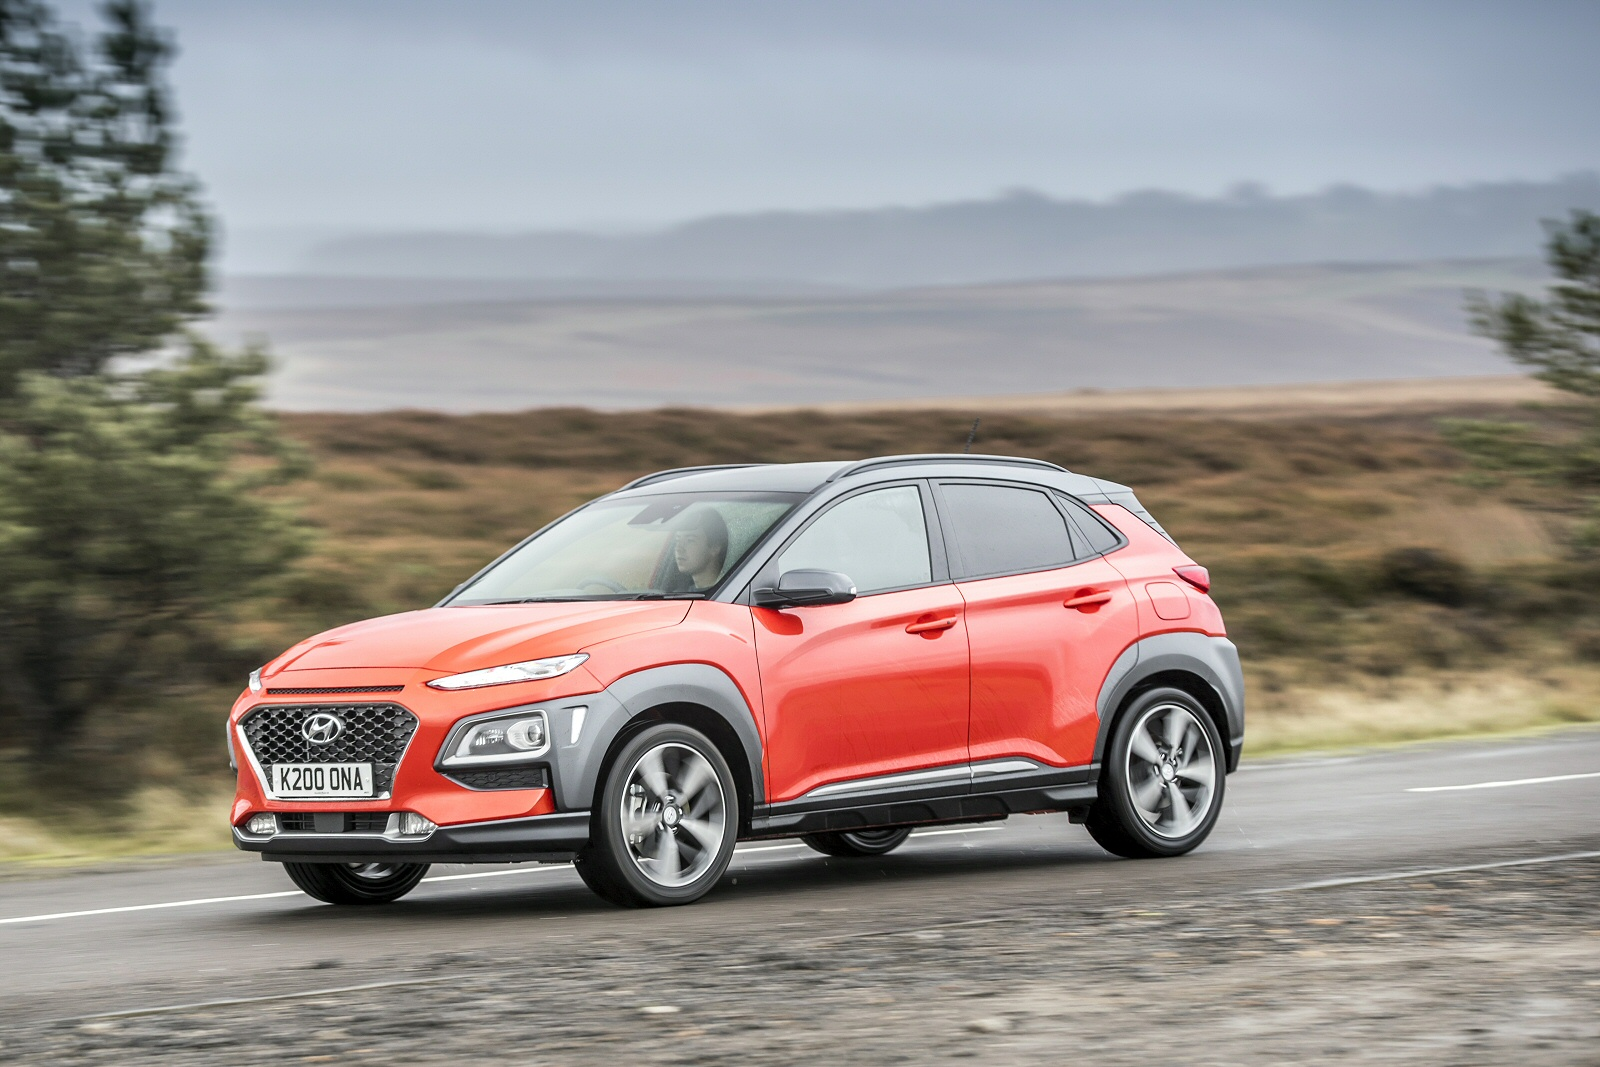 new hyundai kona 1 0t gdi blue drive premium 5dr petrol hatchback for sale bristol street. Black Bedroom Furniture Sets. Home Design Ideas